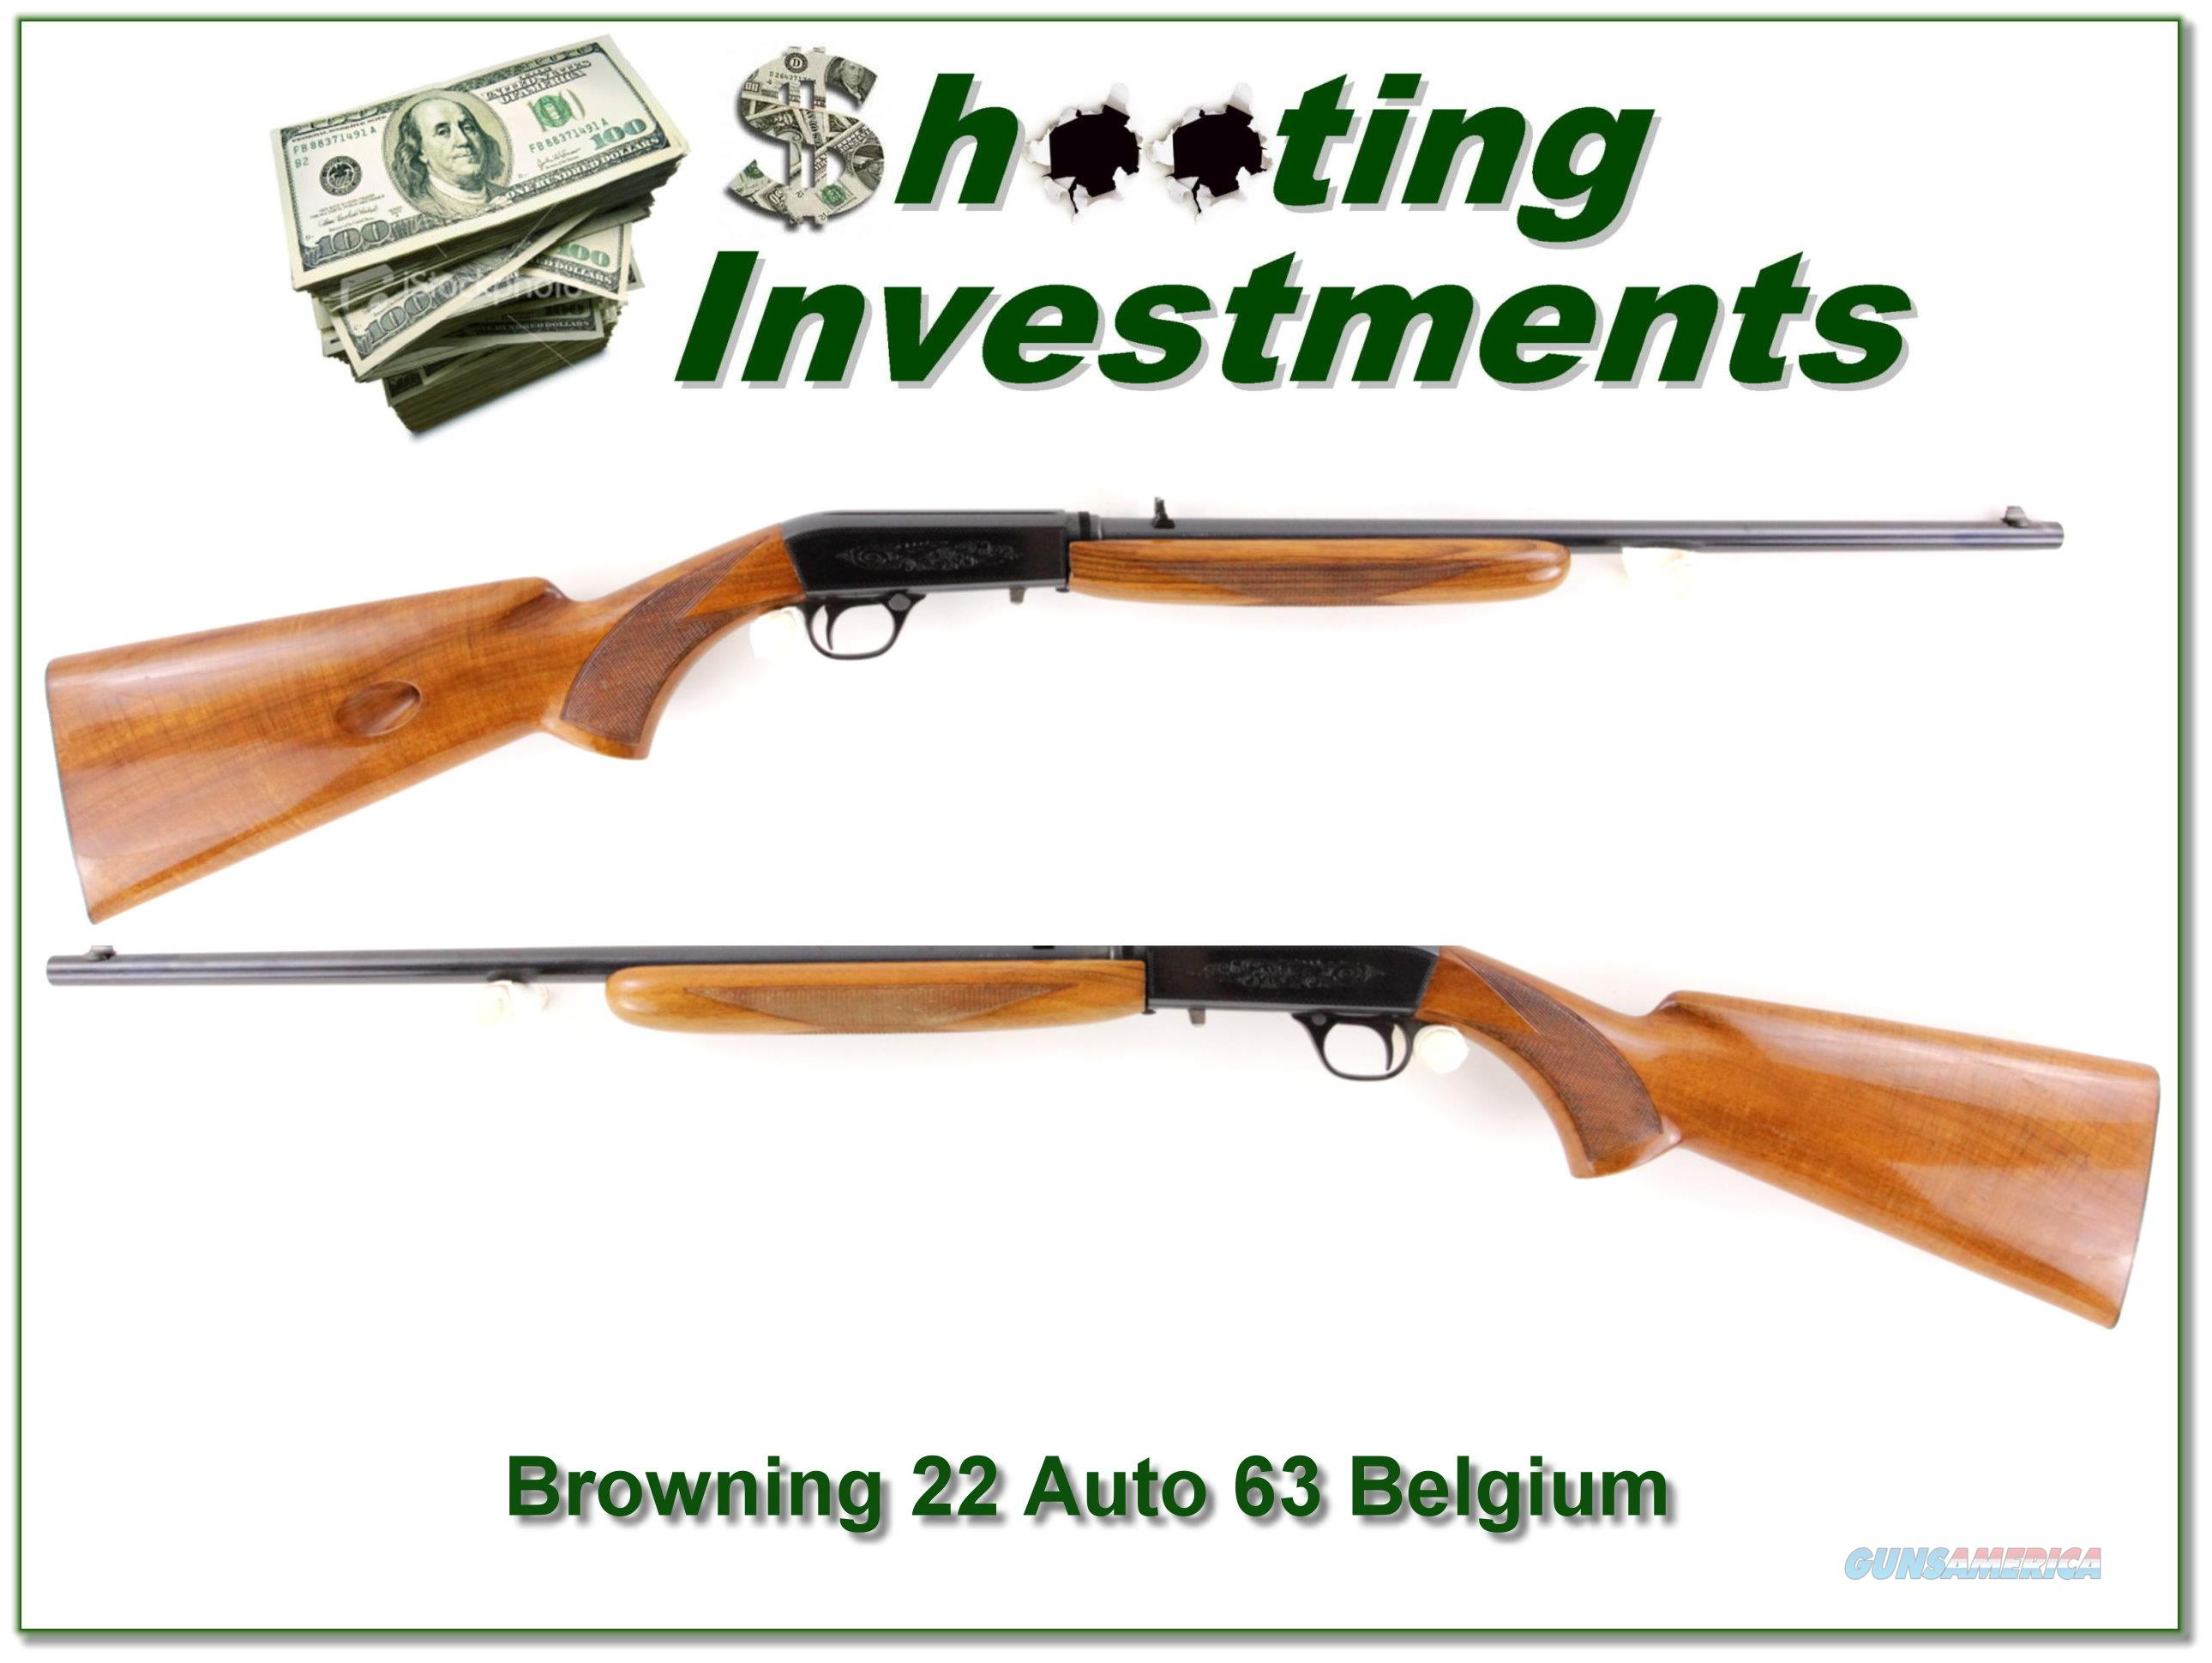 Browning 22 Auto 63 Belgium Blond Exc Cond  Guns > Rifles > Browning Rifles > Semi Auto > Hunting